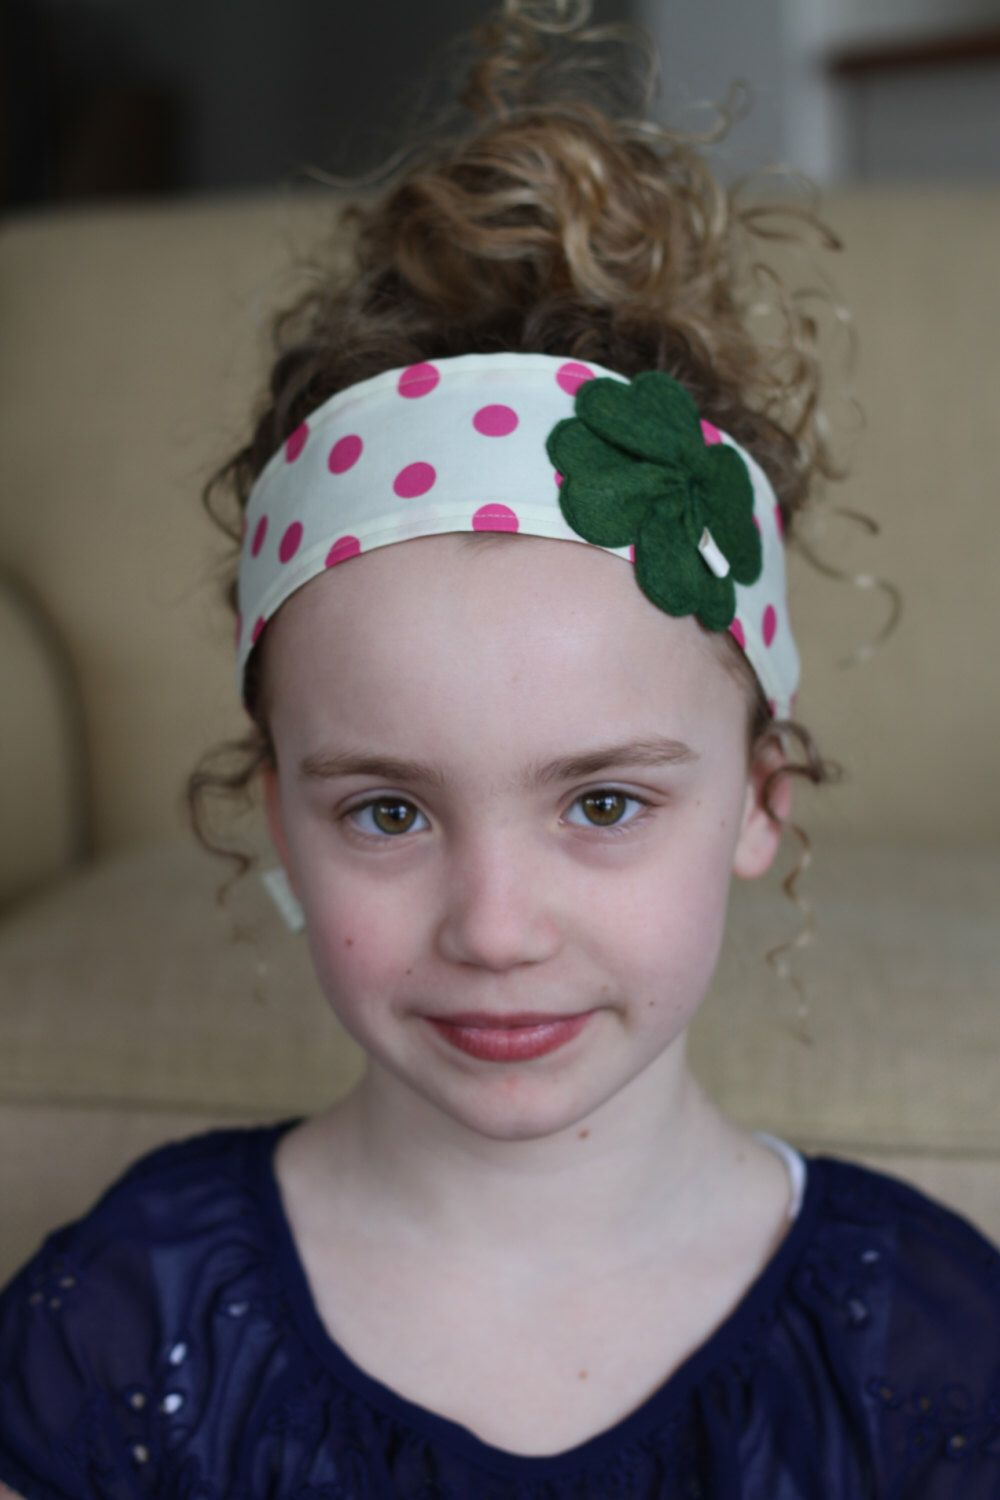 Lucky Pink Polka Dots: Headband (large clover) by letterbdesigns on Etsy https://www.etsy.com/listing/182480044/lucky-pink-polka-dots-headband-large